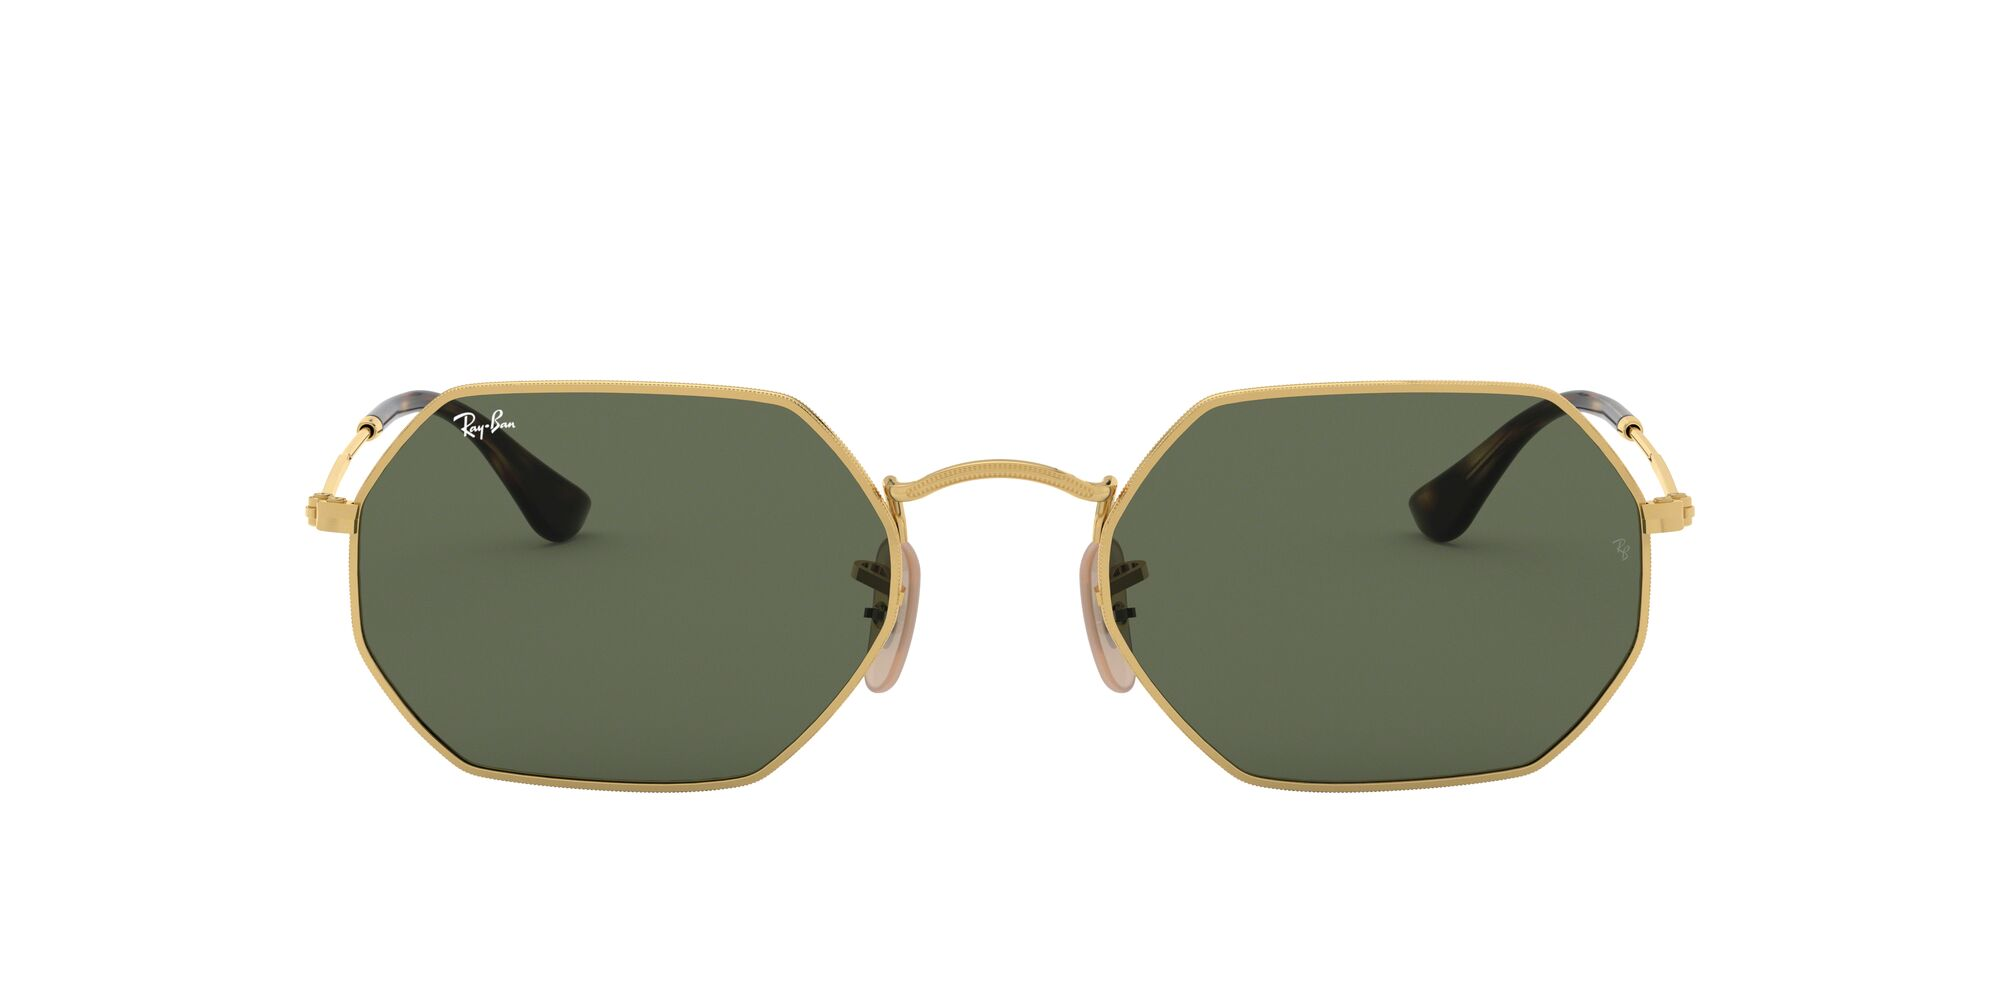 Front Ray-Ban Ray-Ban 0RB3556N 001 53/21 Goud/Groen